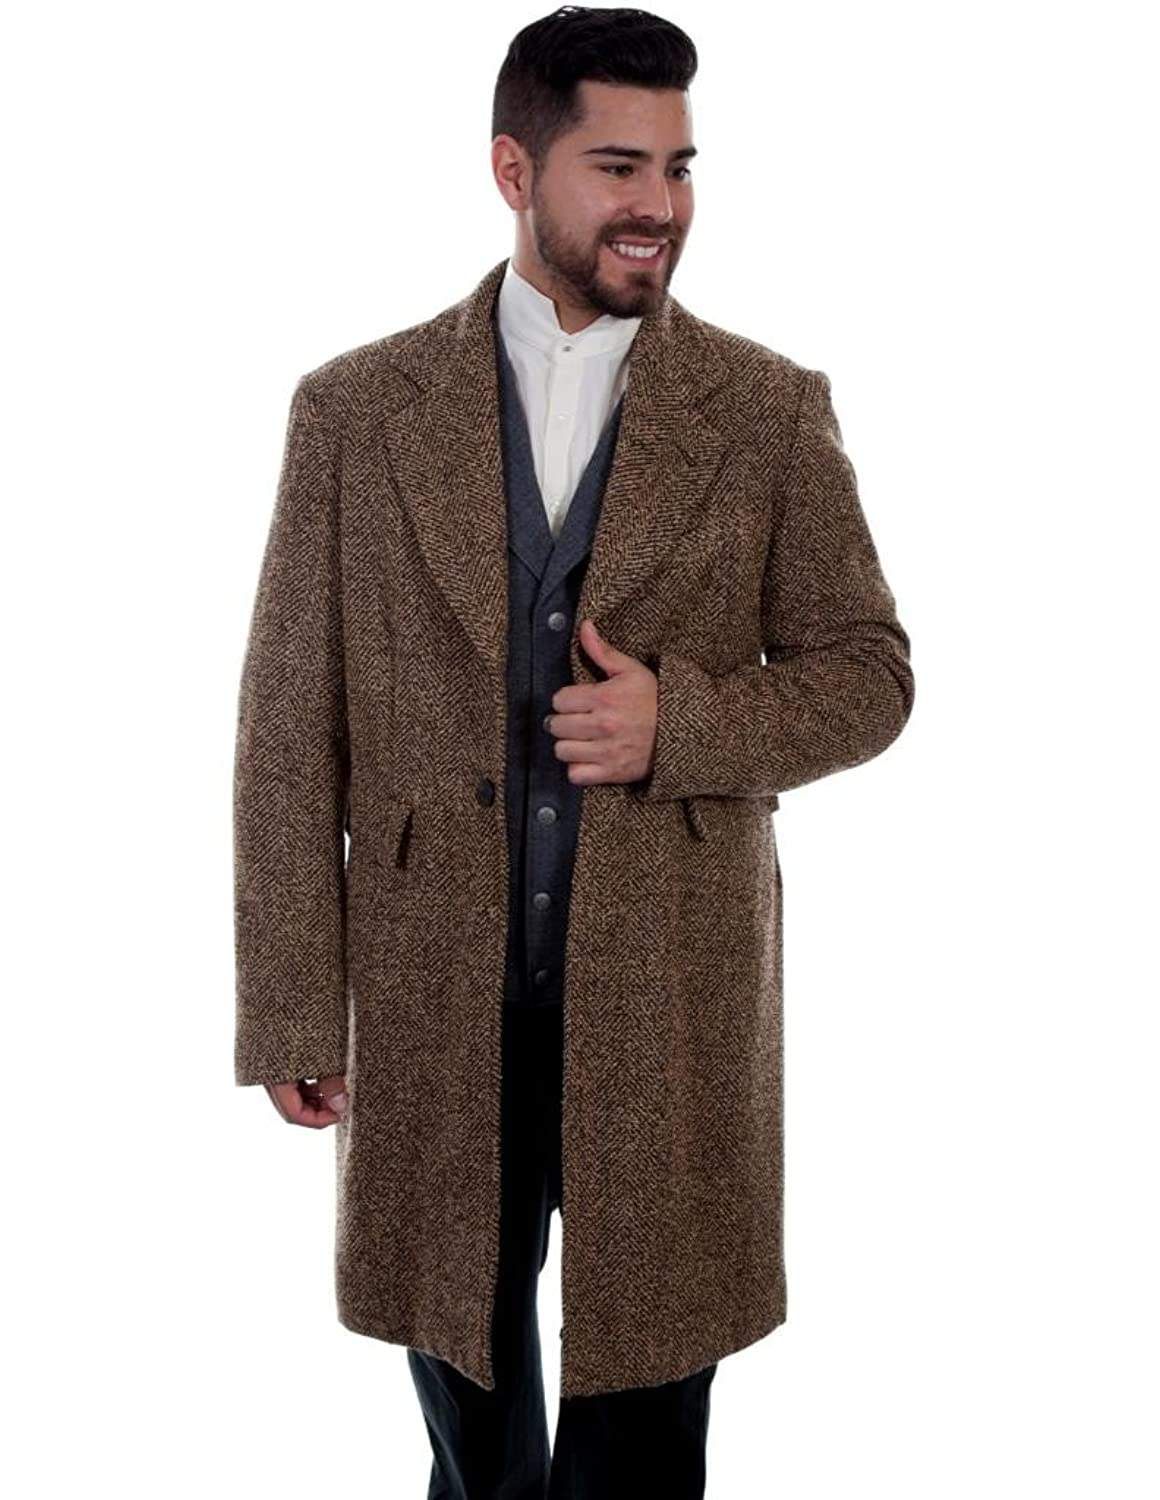 1900s Edwardian Men's Suits and Coats Scully Western Coat Mens Herringbone Frock Button Flap Pockets 521129 $239.95 AT vintagedancer.com